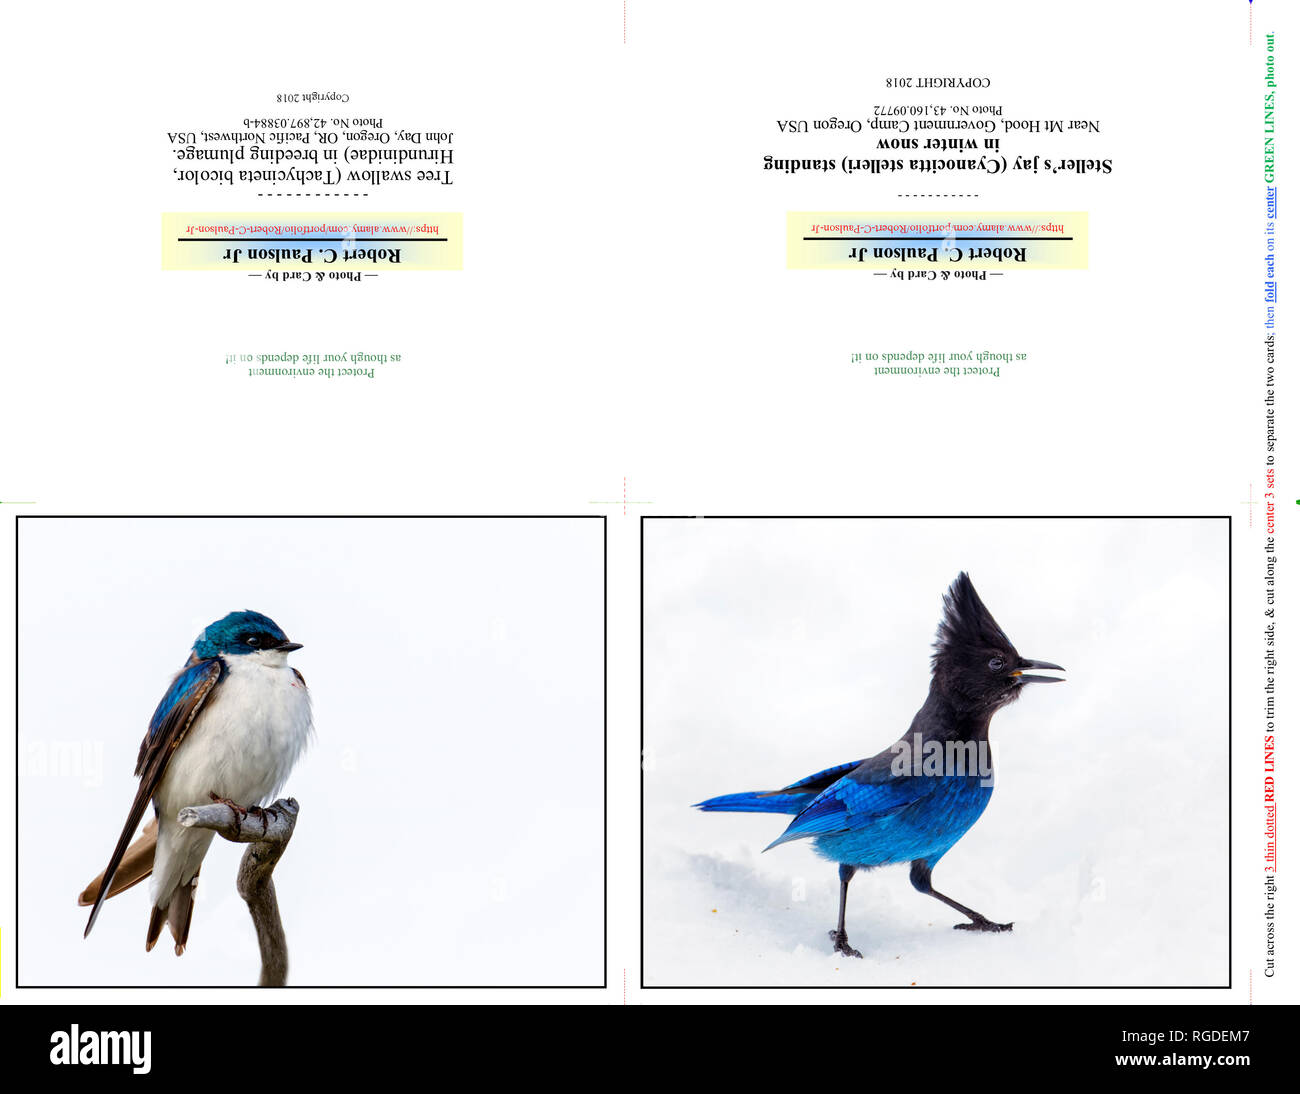 42,897.03884-b & 43,160.09772 photography Photo Note Cards, TWO 5x4 horizontal on 11x8.5 paper (print cut fold), birds Tree swallow & Steller's jay - Stock Image